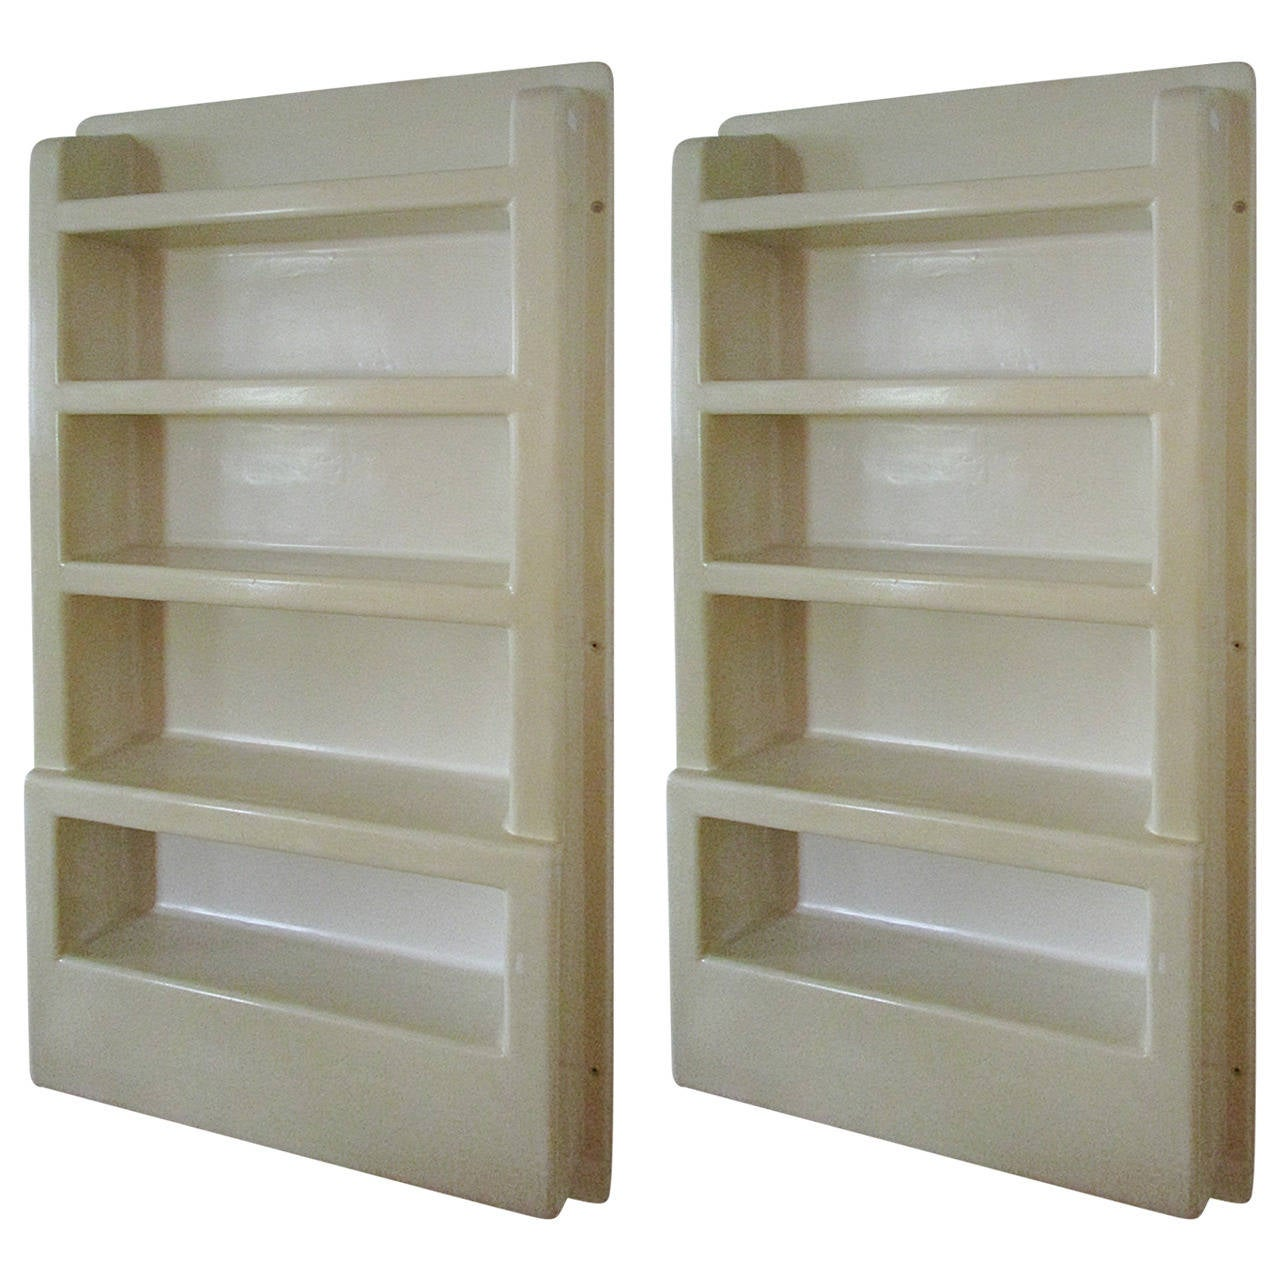 Pair Of Wall Mounted Molded Plastic Shelf Units For